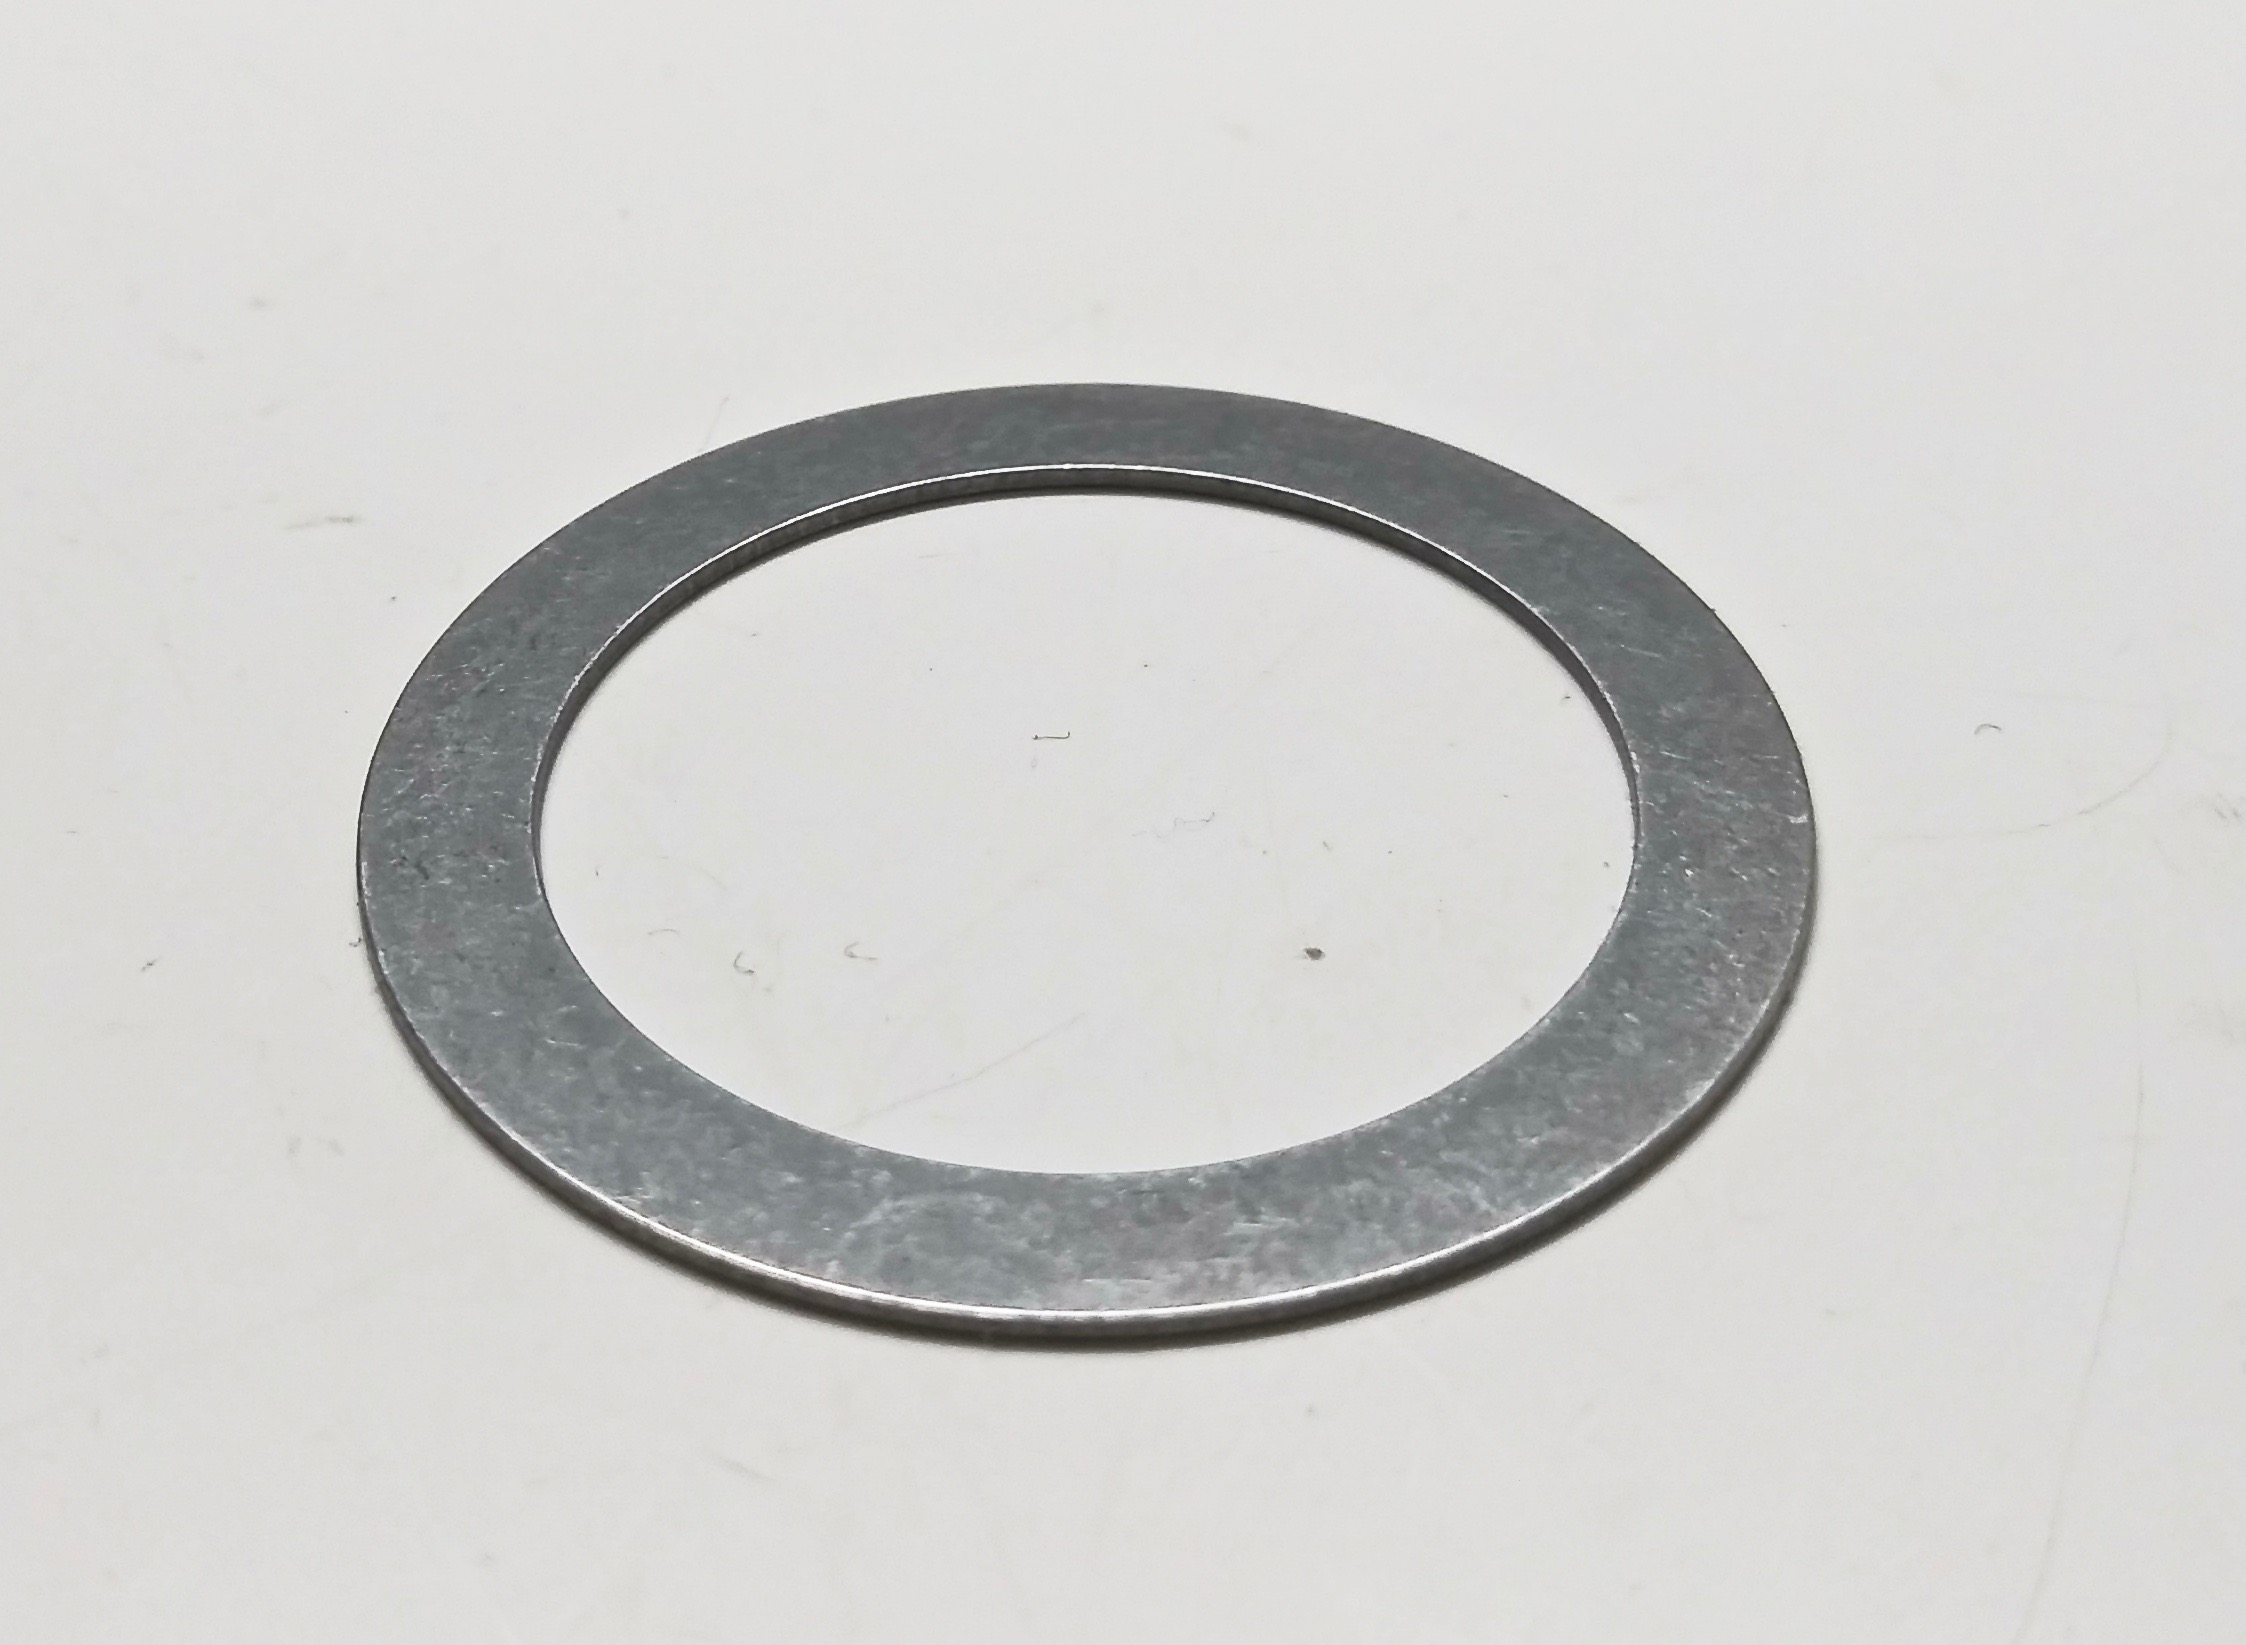 Oil Cooler Gasket for 2009 to Now 70 Series Land Cruisers